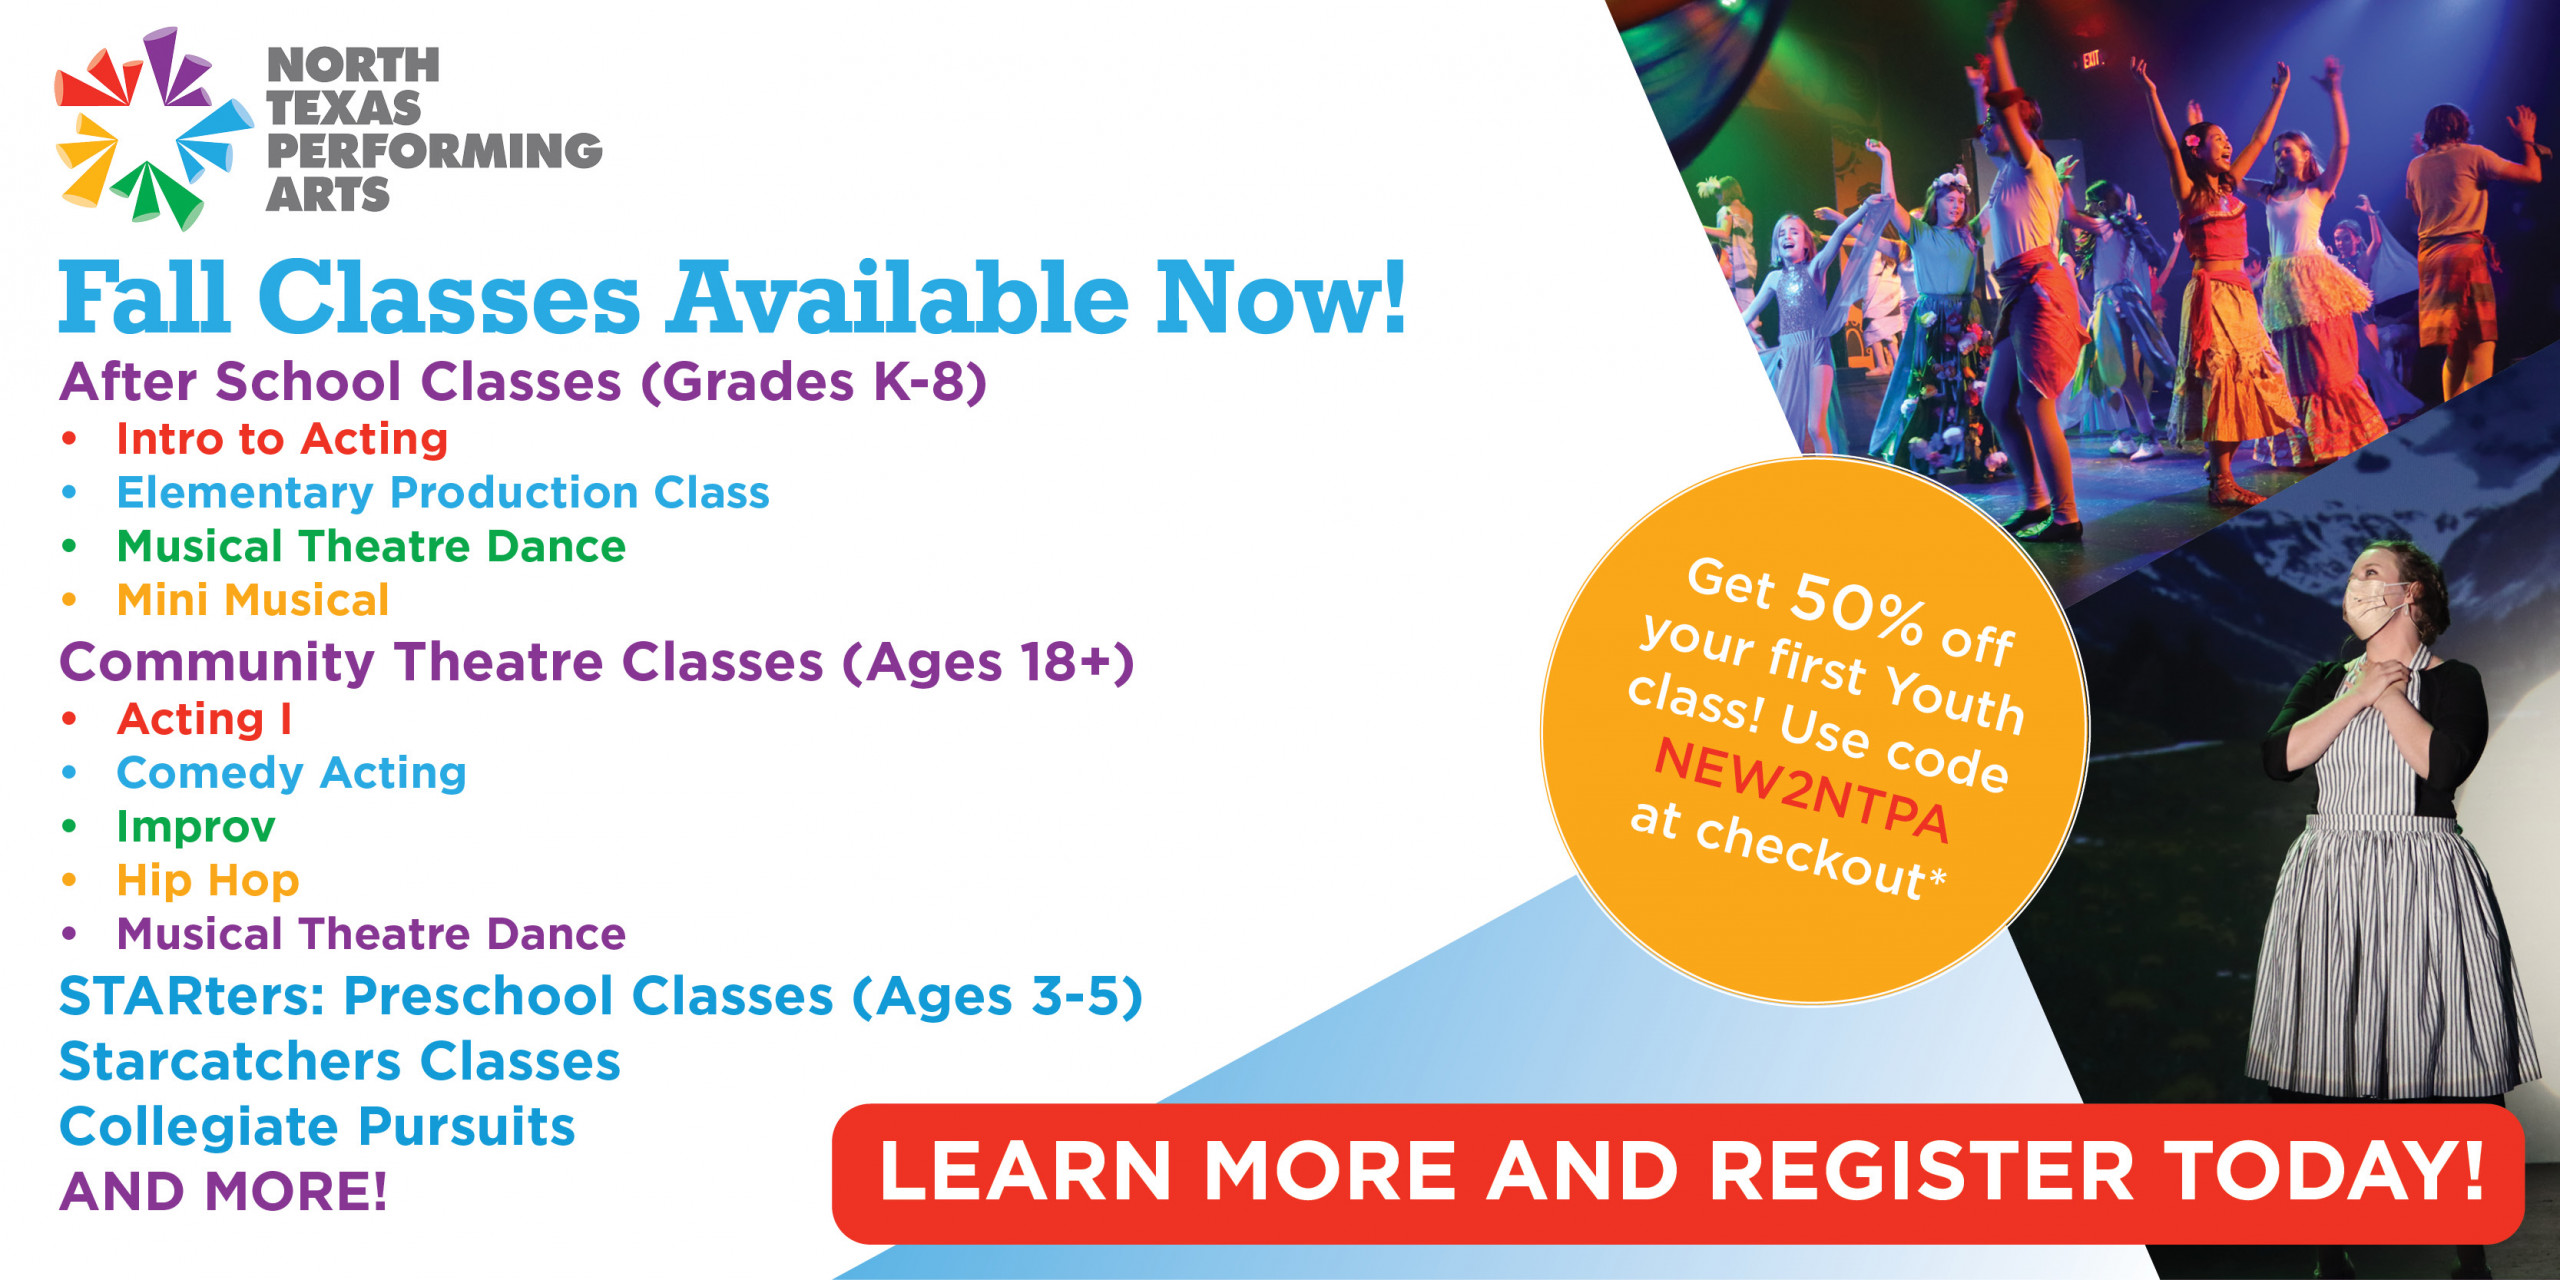 Fall Classes available now